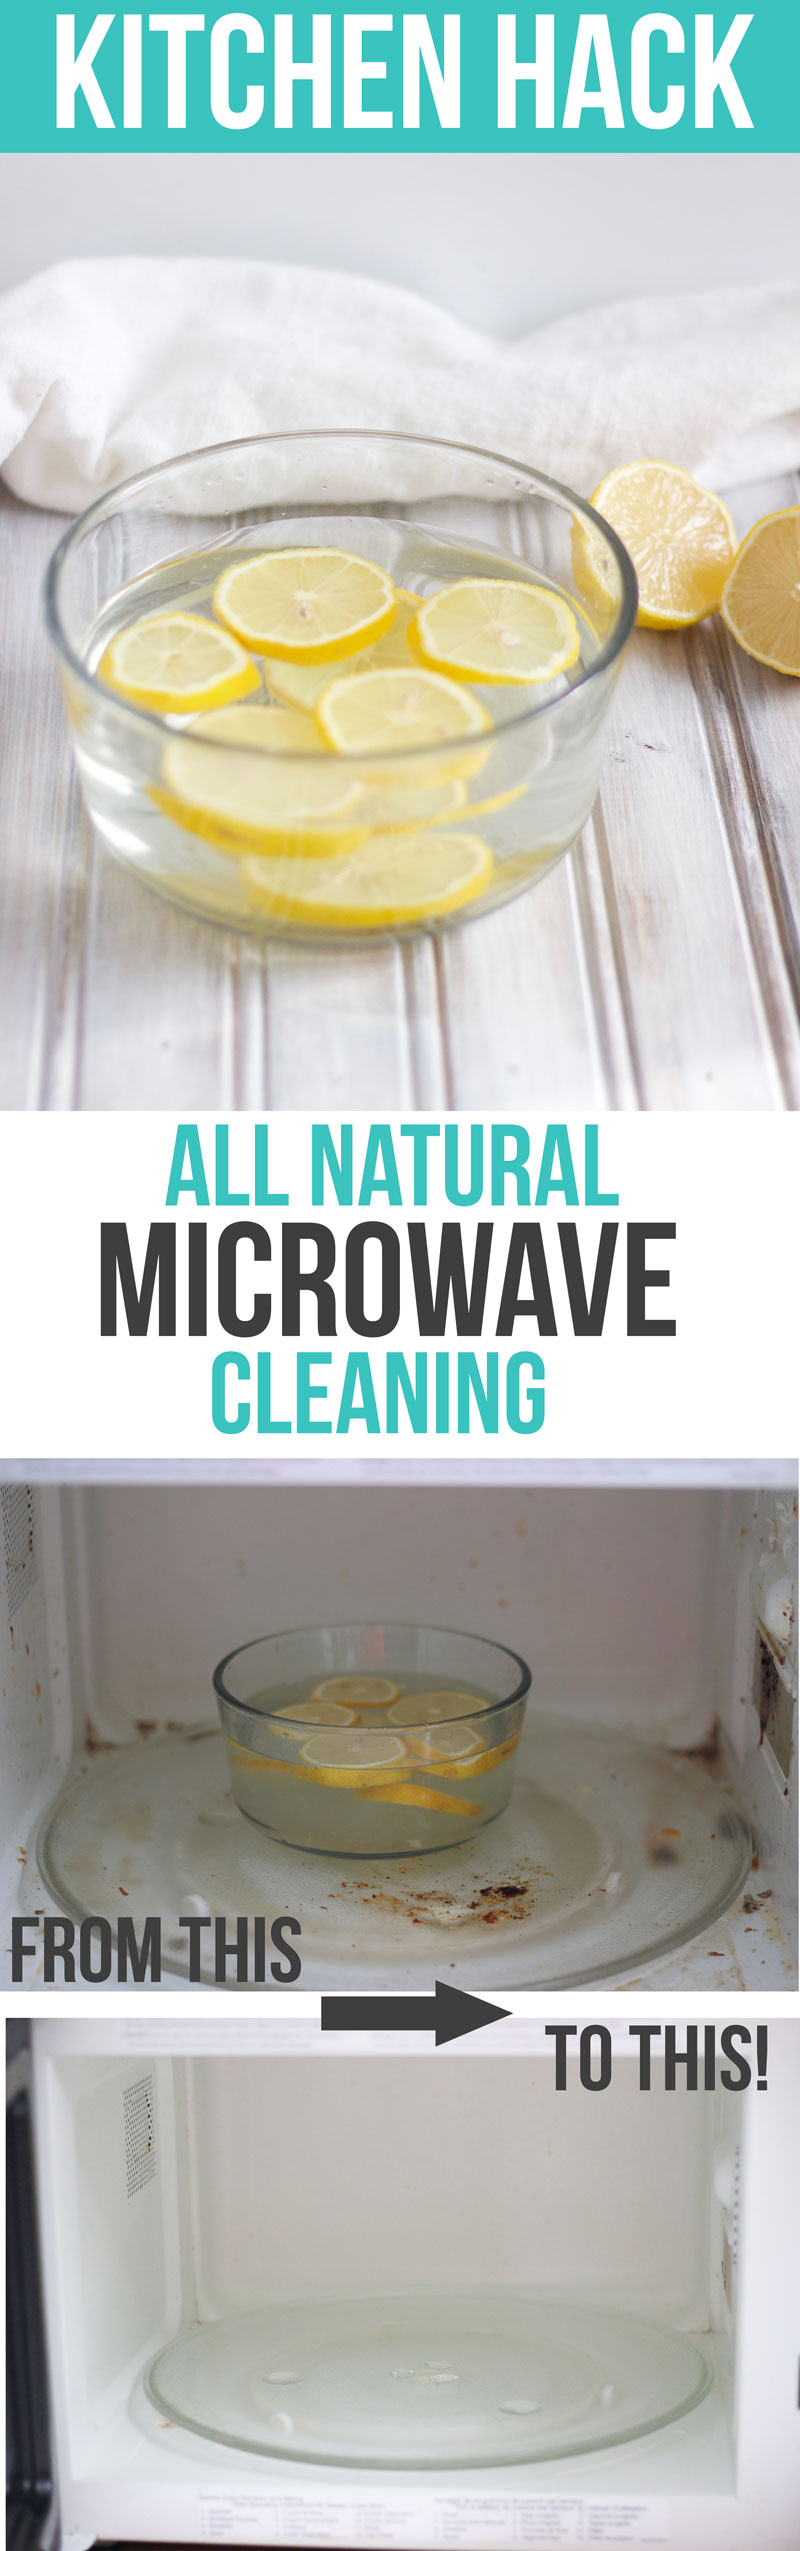 All Natural Microwave Cleaning, Lemon Water Cleaner, Kitchen Clean Hacks and Tips - Nikkisplate